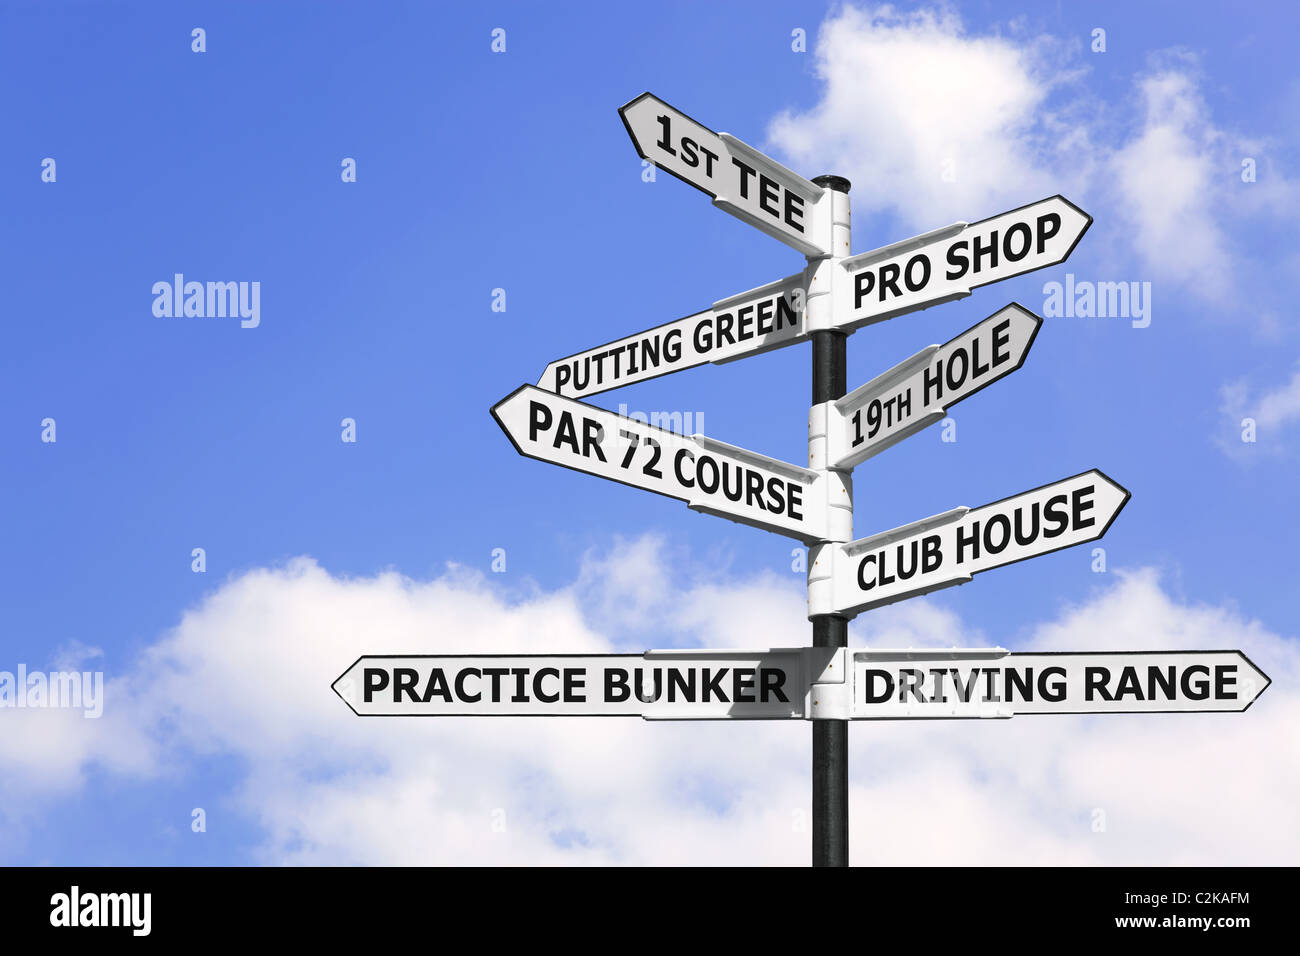 Concept image of a signpost with golf course information on the arrows. - Stock Image